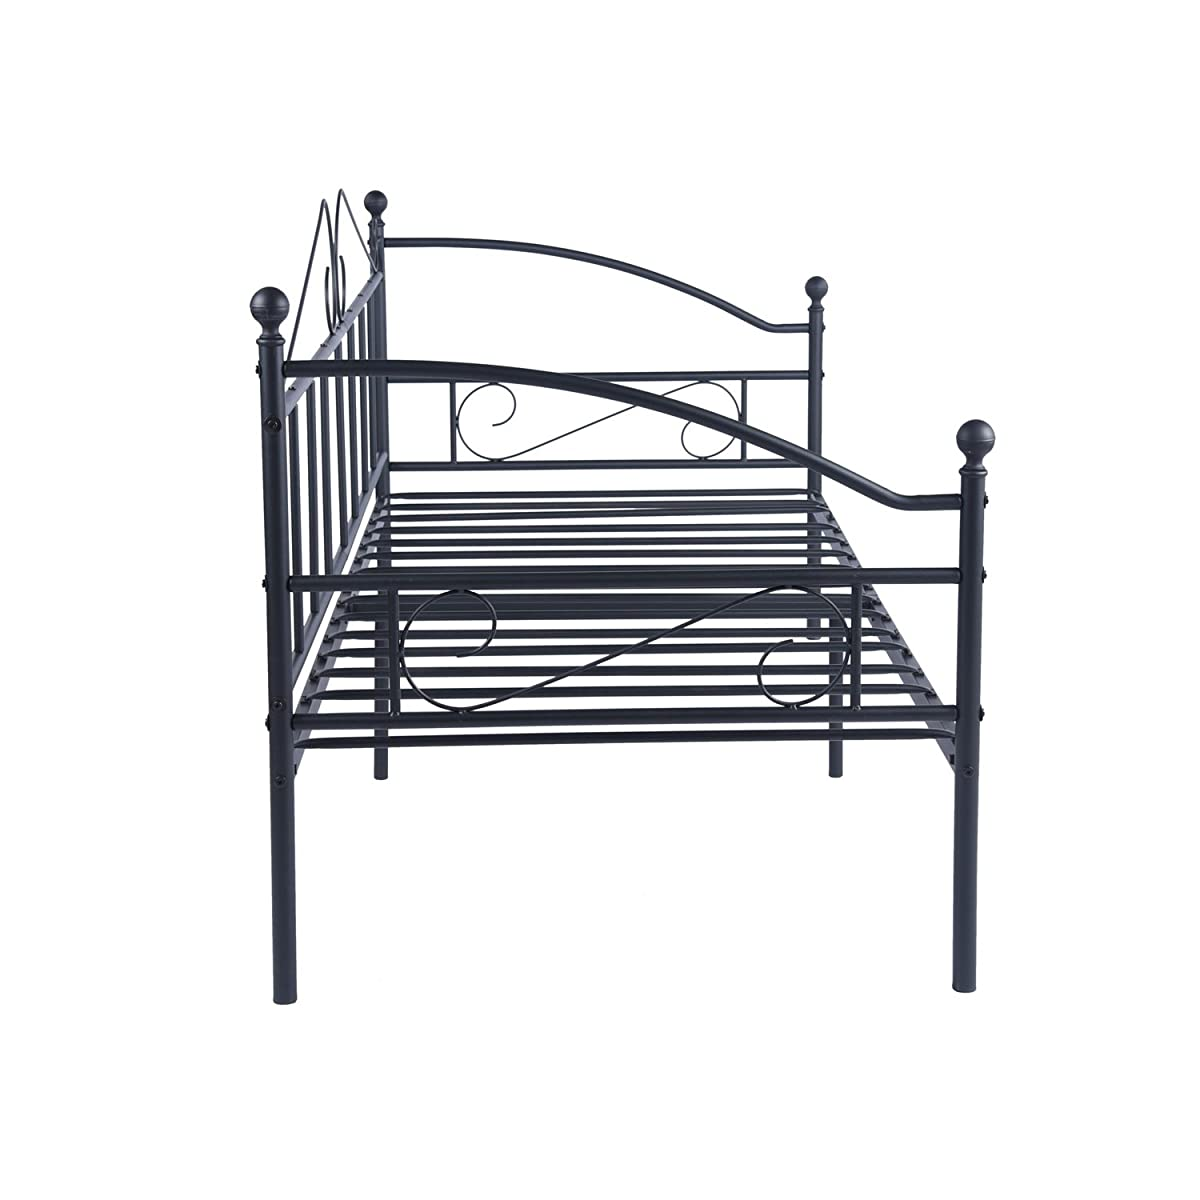 GreenForest Metal Daybed Twin Size with Headboard Metal Slats Support Bed Frame Mattress Foundation Black